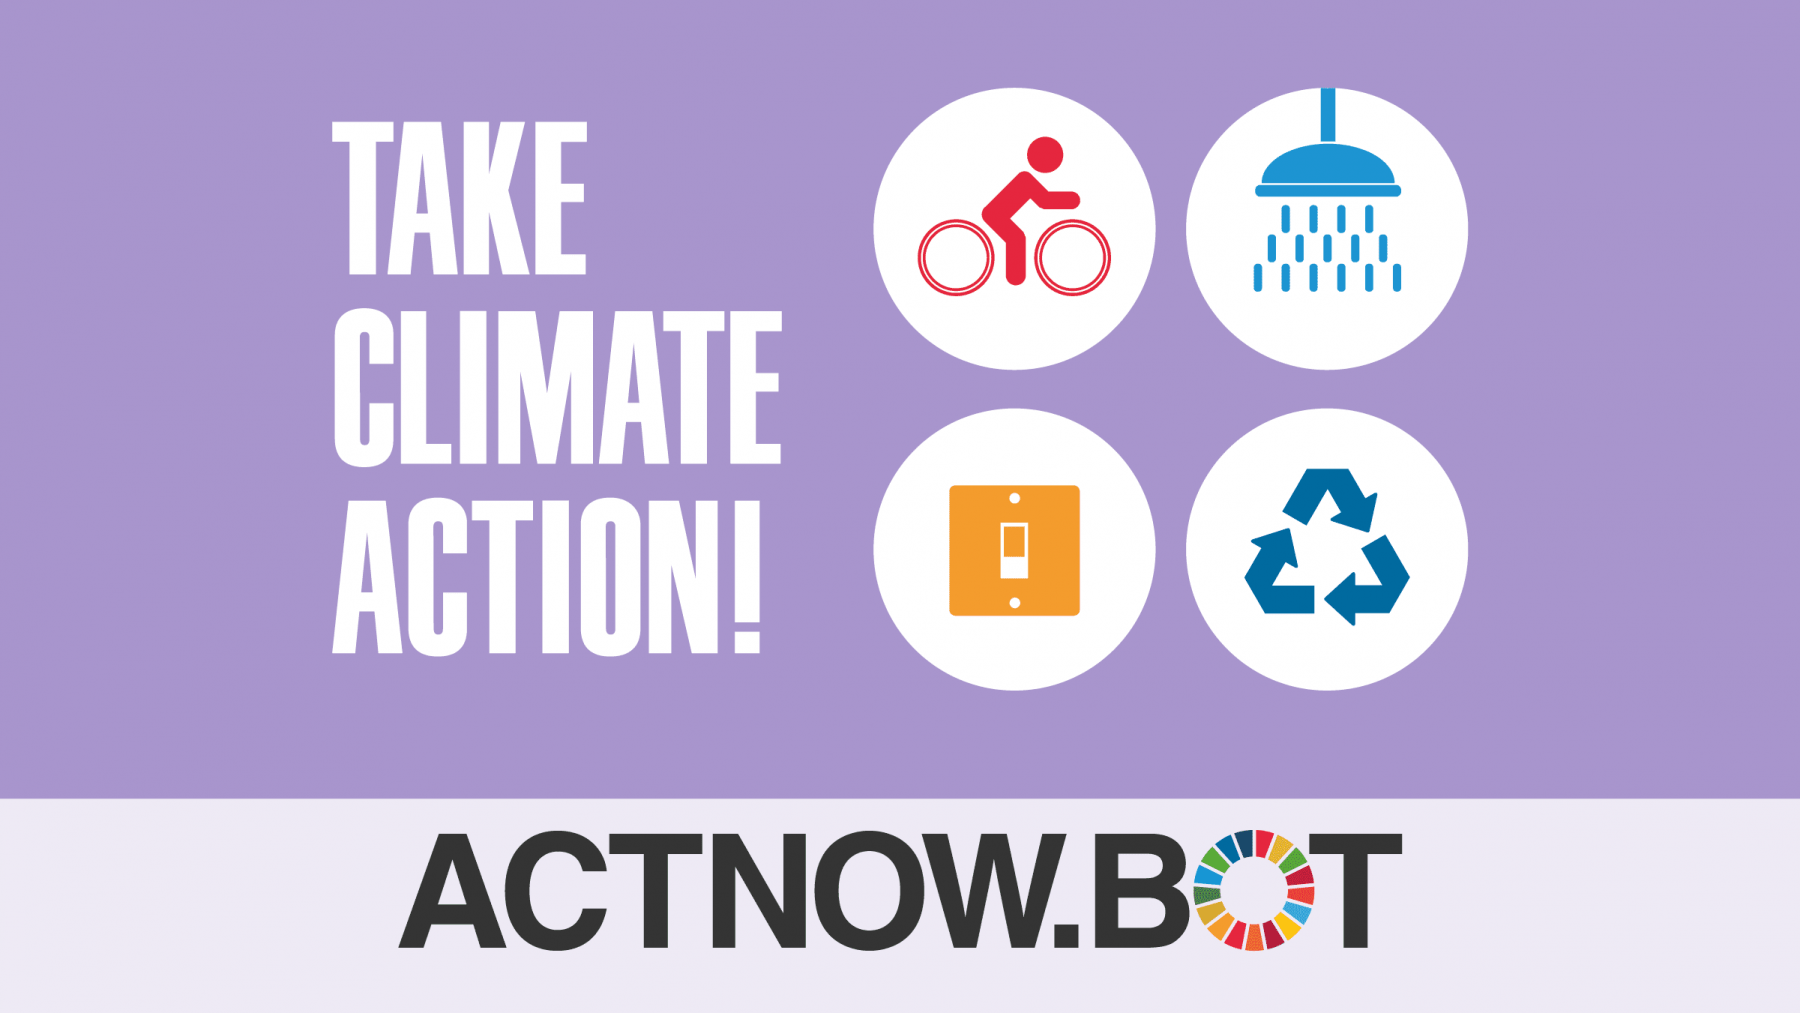 Interested in helping the environment but overwhelmed by the scale of climate change? Visit this United Nations resource and  learn some easy, every-day actions that will dramatically reduce your carbon footprint.  Inspire others to do the same or create a green transition in your community!